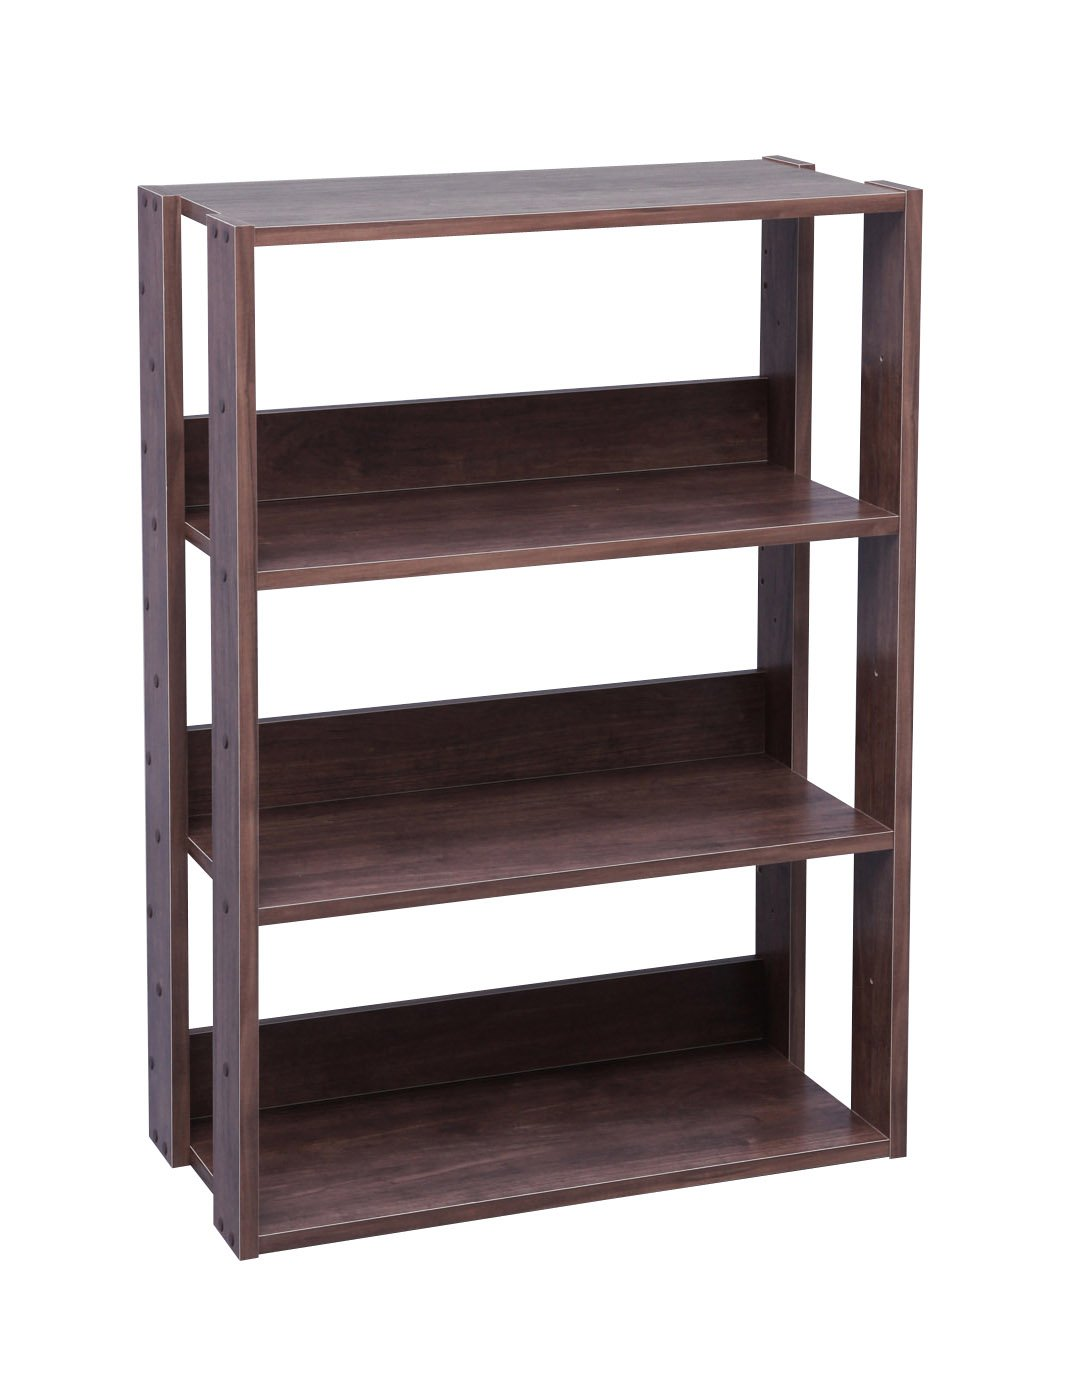 IRIS USA 3-Tier Wide Open Wood Bookshelf, Dark Brown